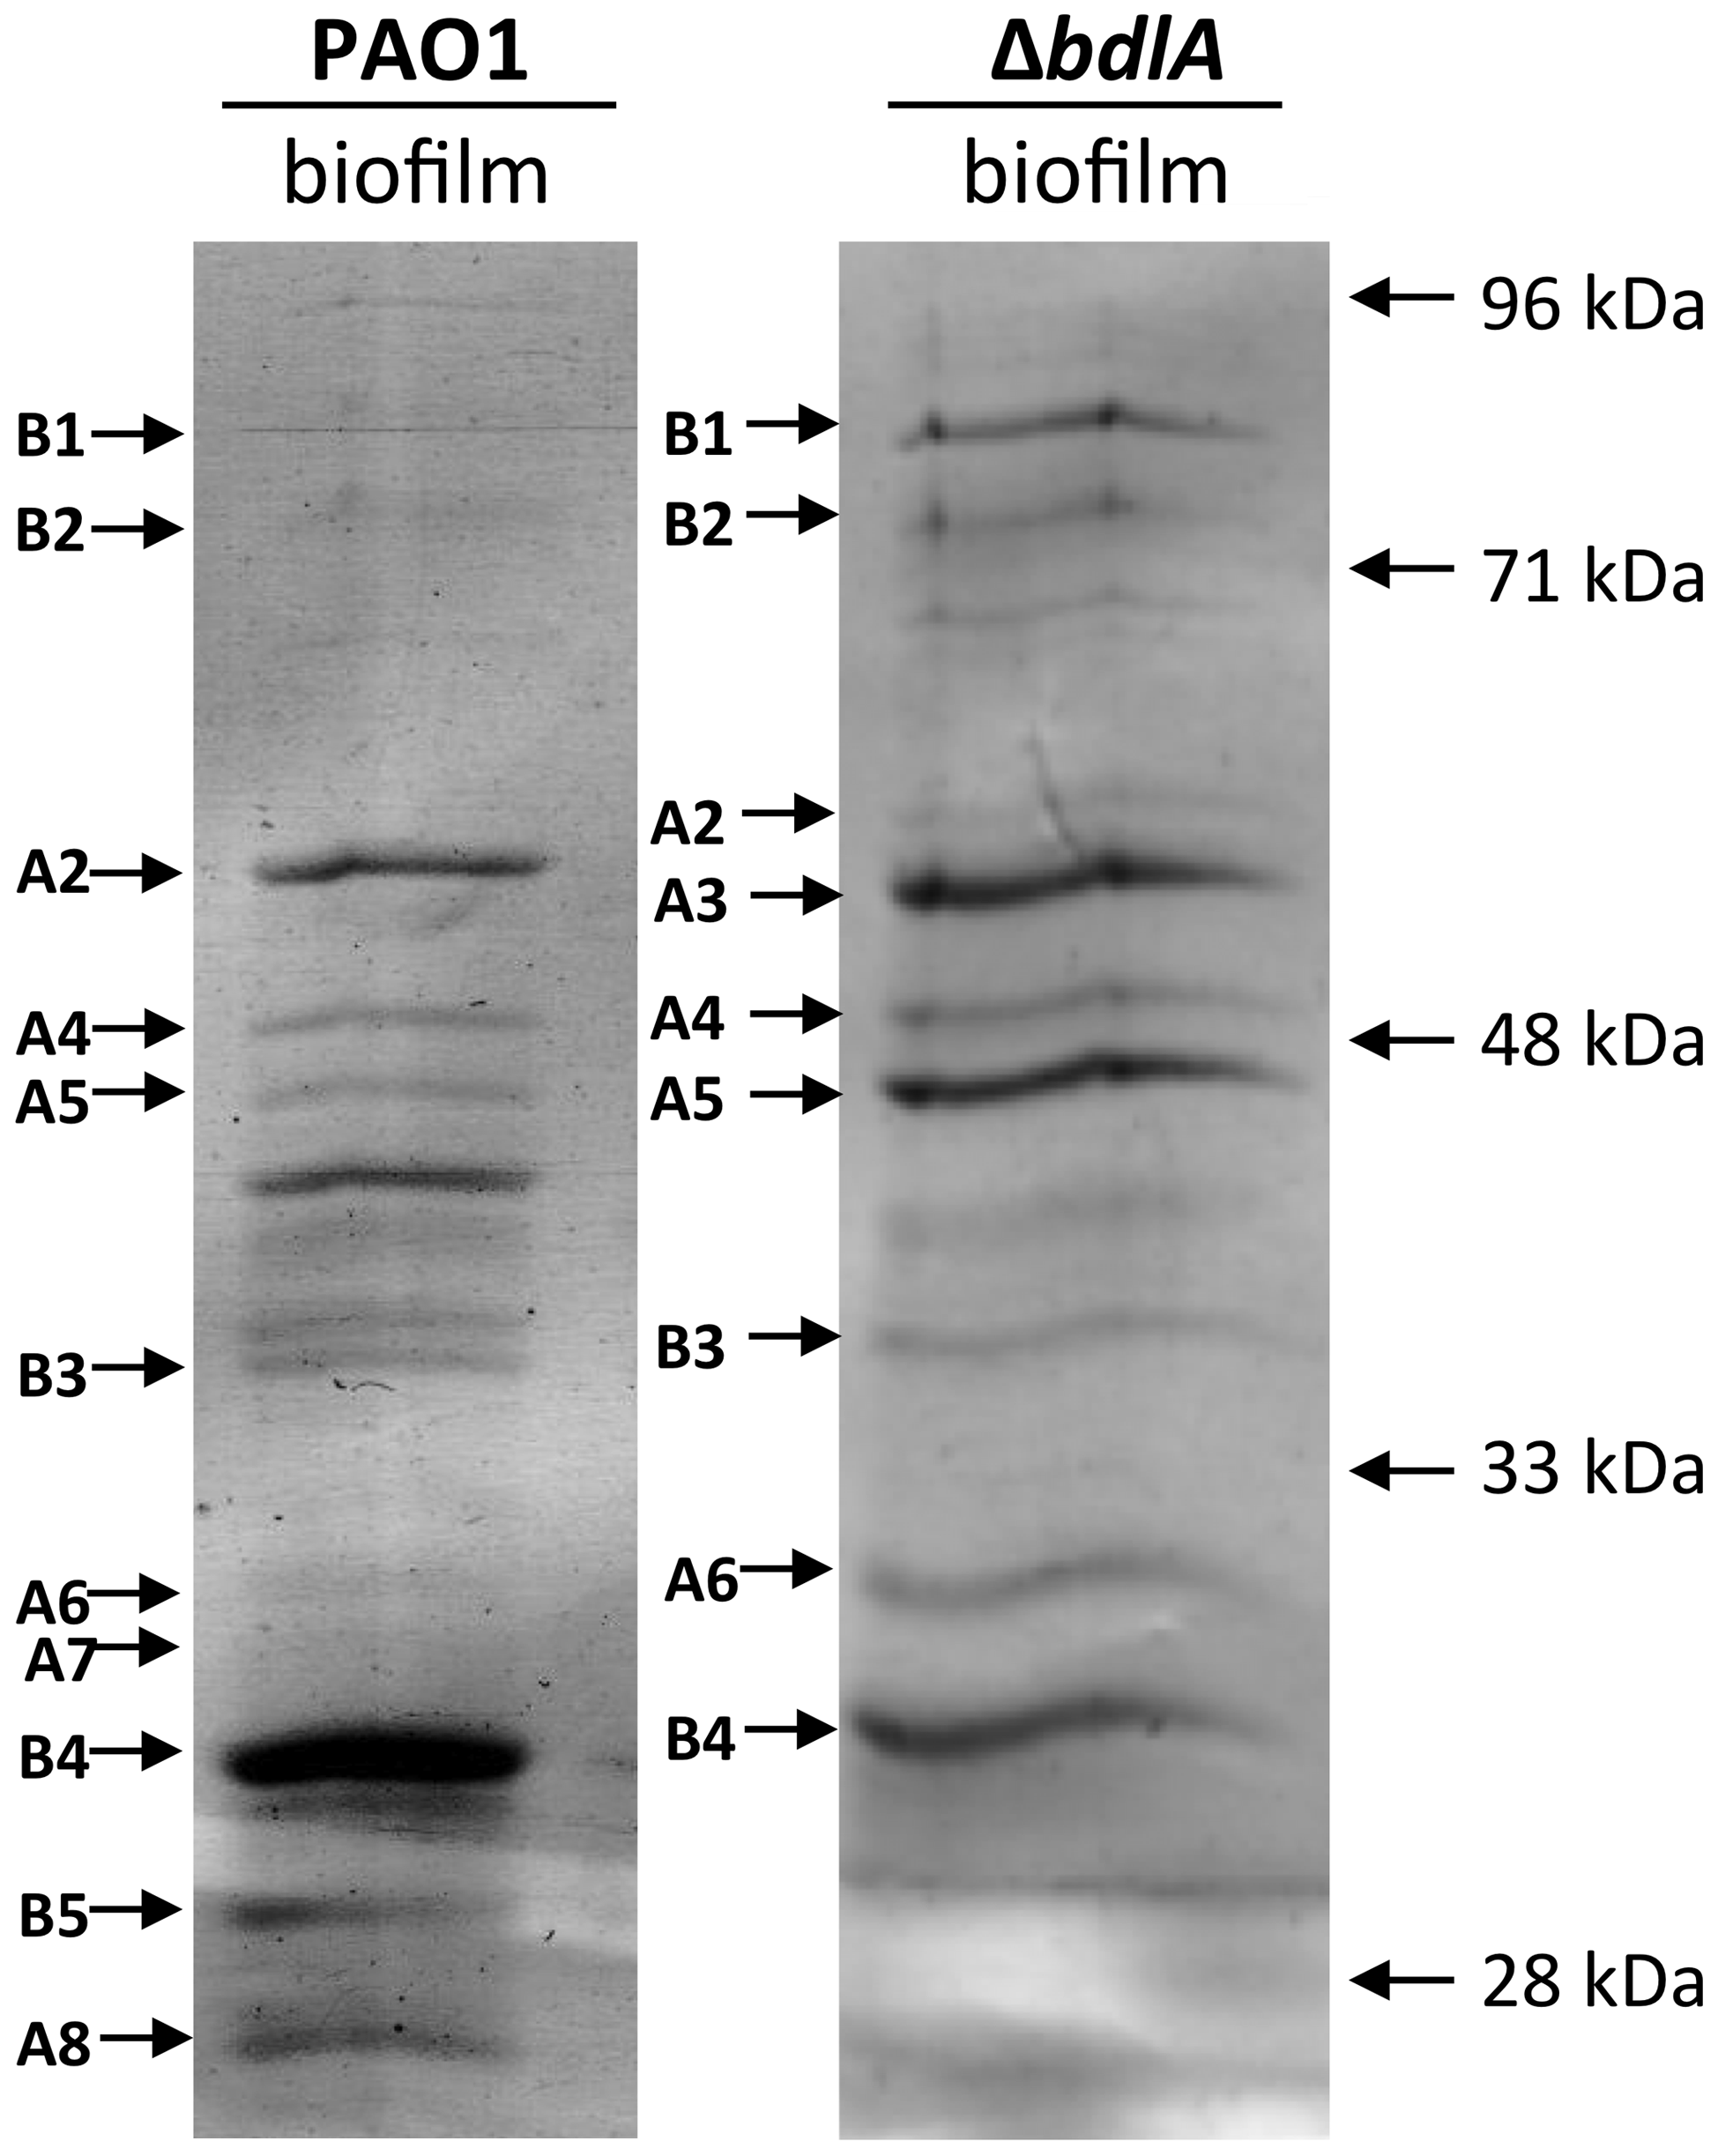 Analysis of proteins present in supernatants of <i>P.</i> aeruginosa PAO1 and <i>ΔbdlA</i> biofilms.